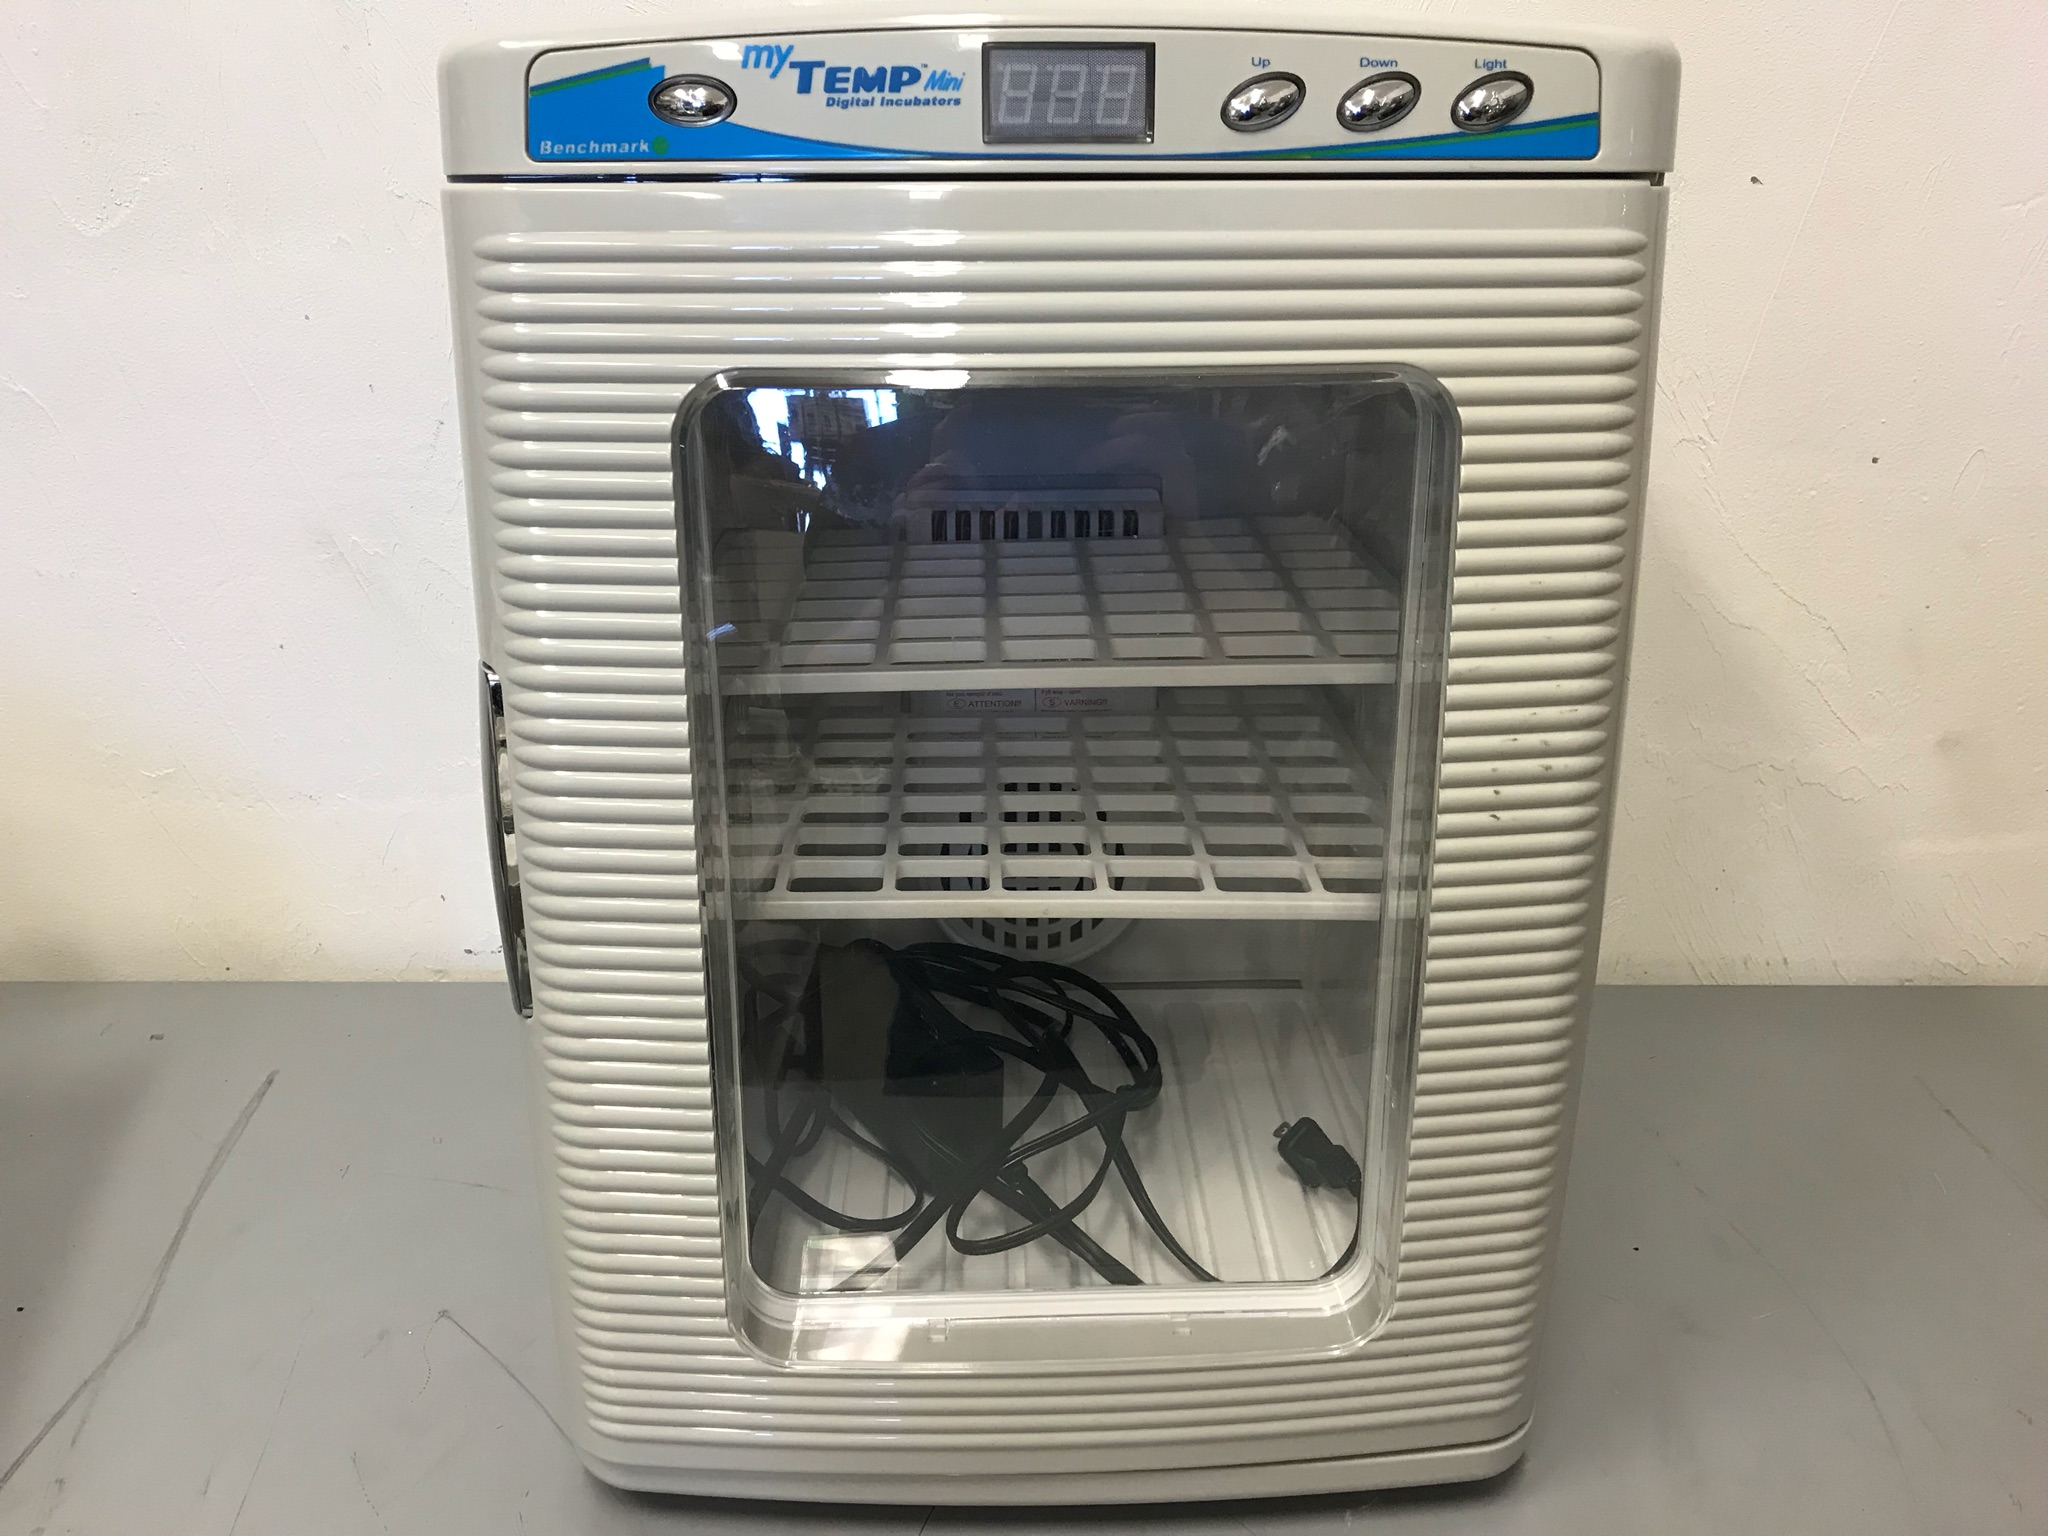 Benchmark Scientific myTemp Mini H2200-HC General Purpose Incubator